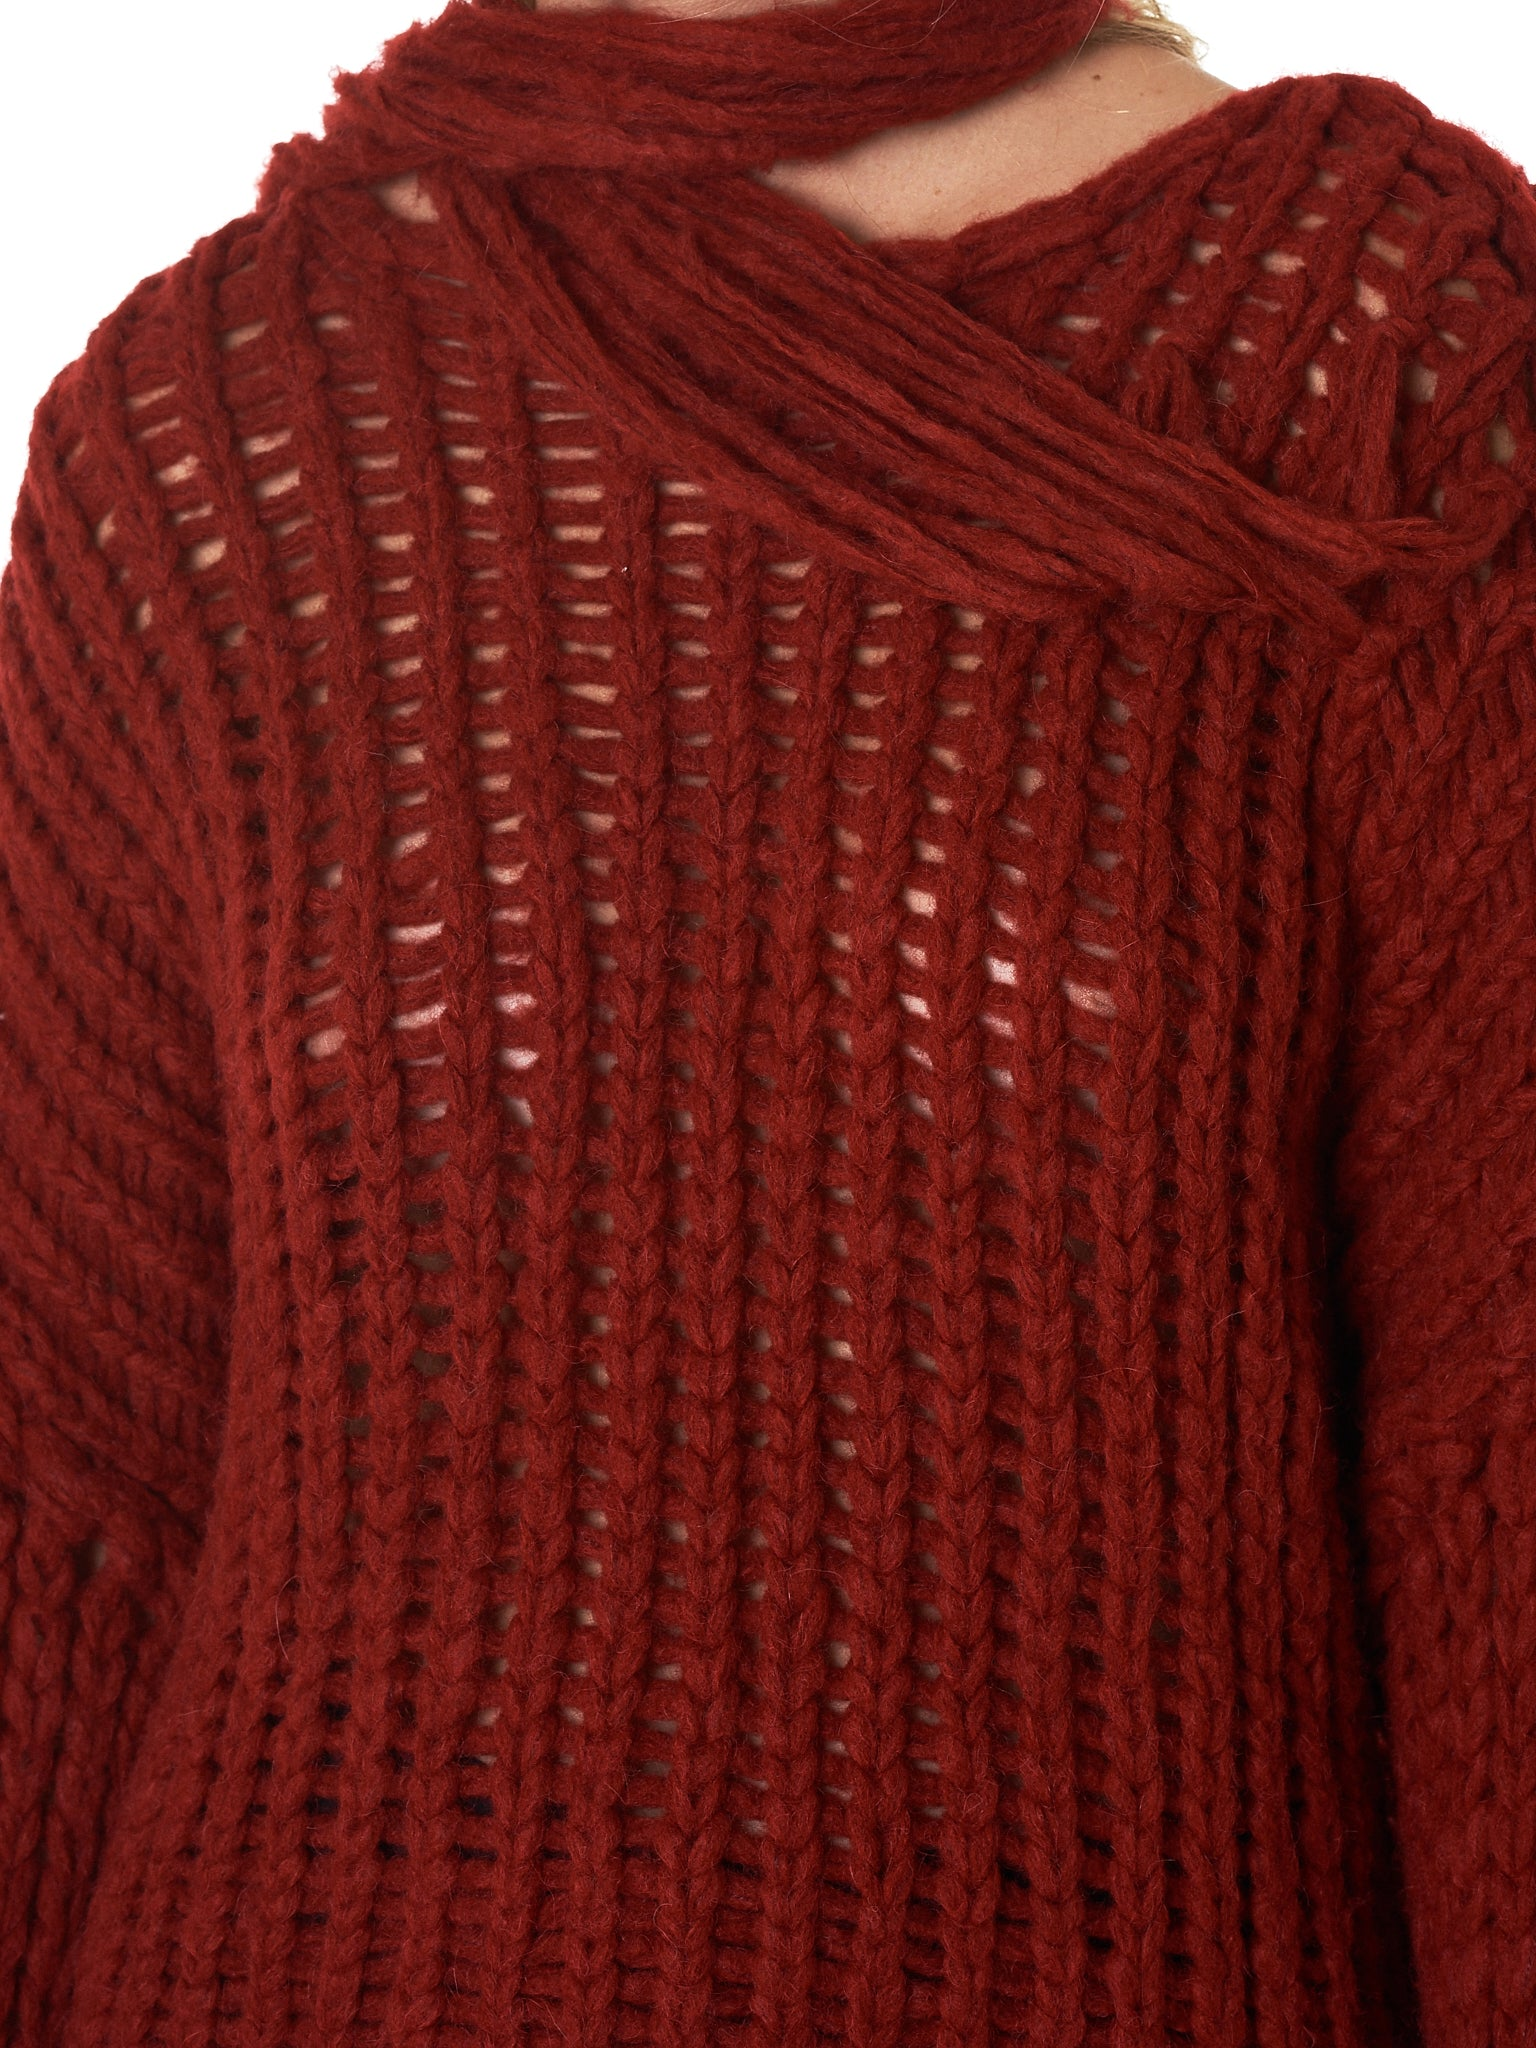 Isabel Benenato Sweater - Hlorenzo Detail 2